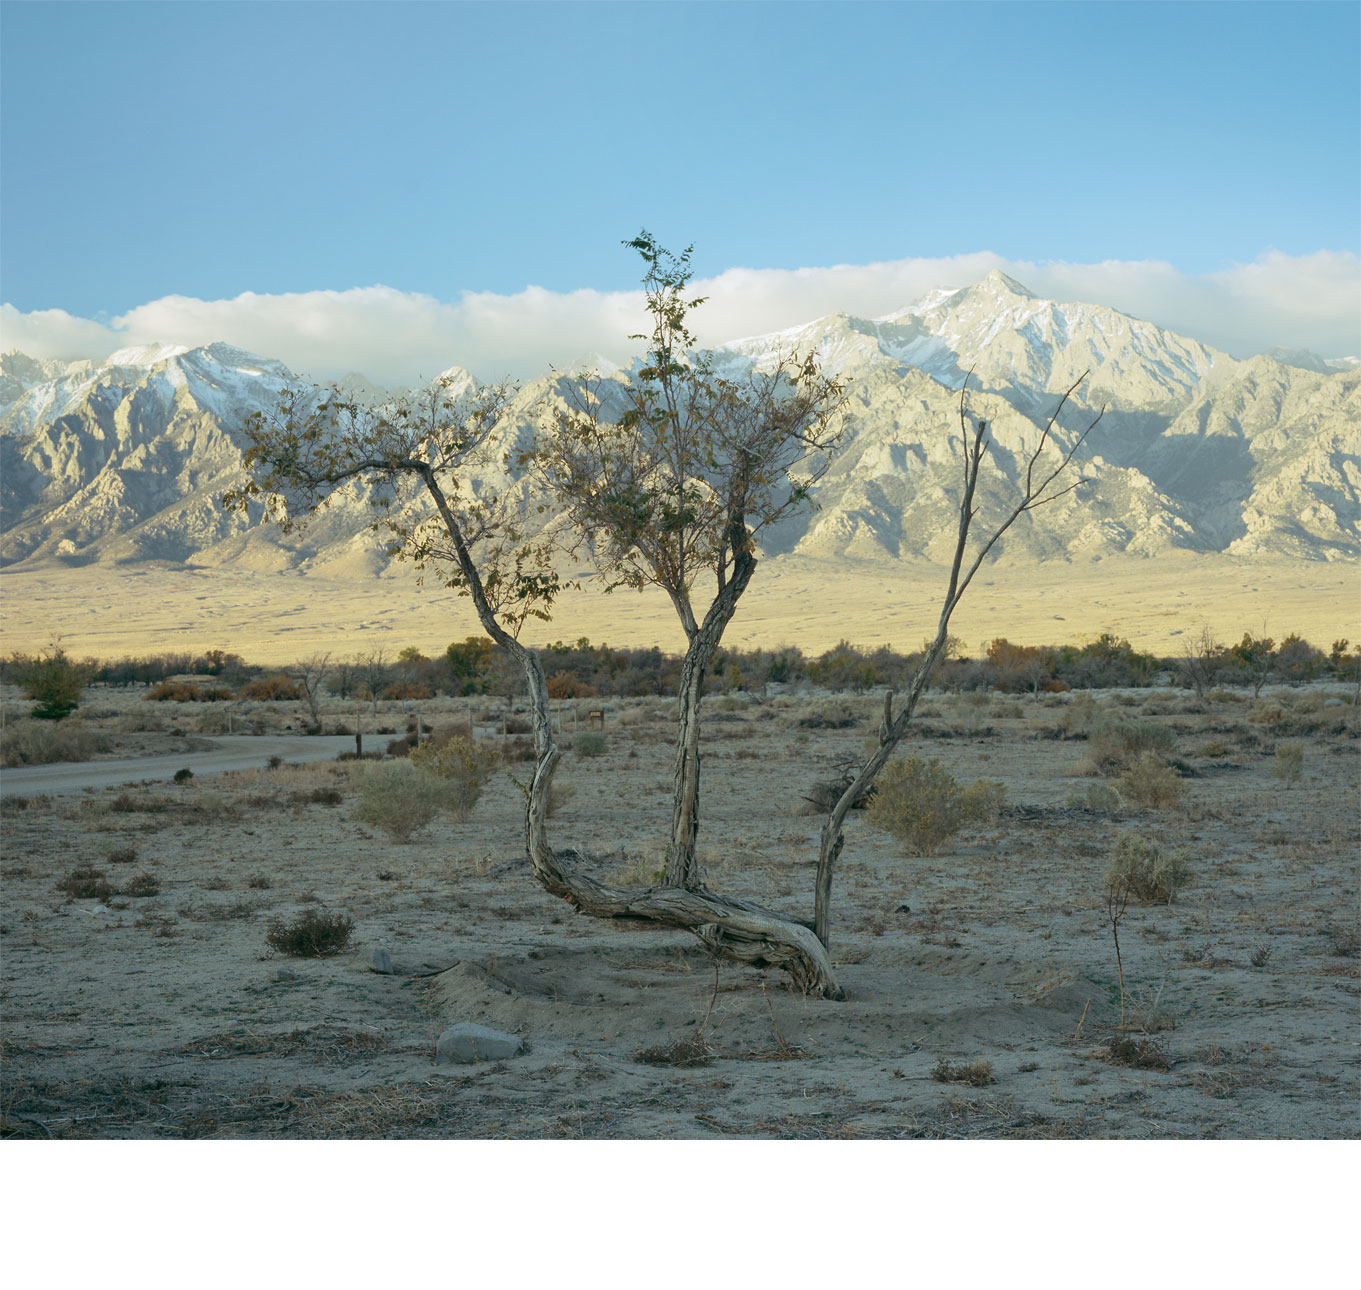 Manzanar_mountain-1.0a.jpg